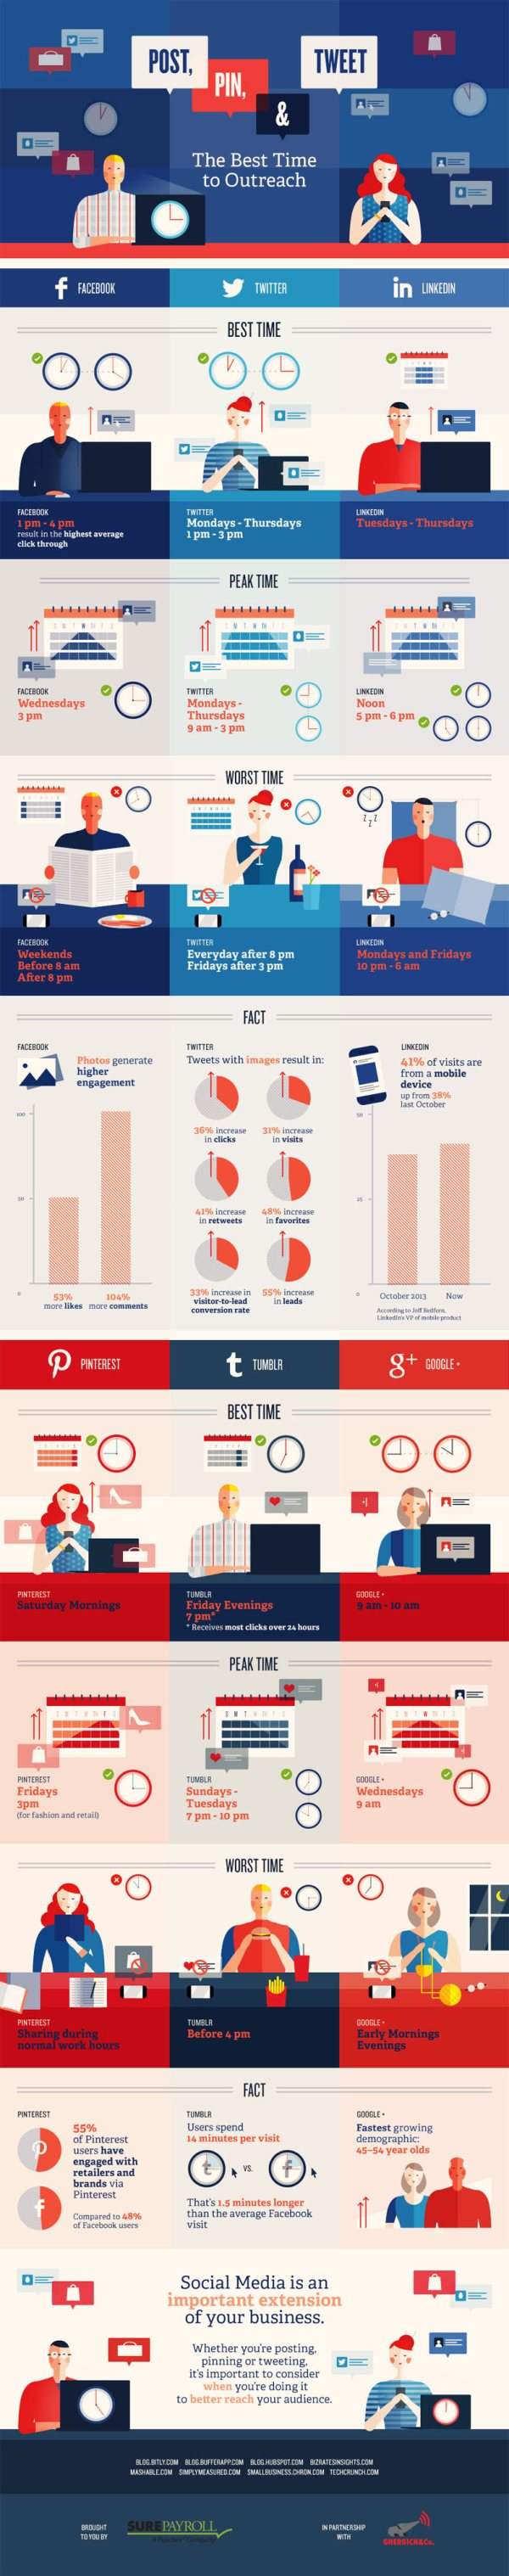 best-time-to-outreach-social-media-infographic